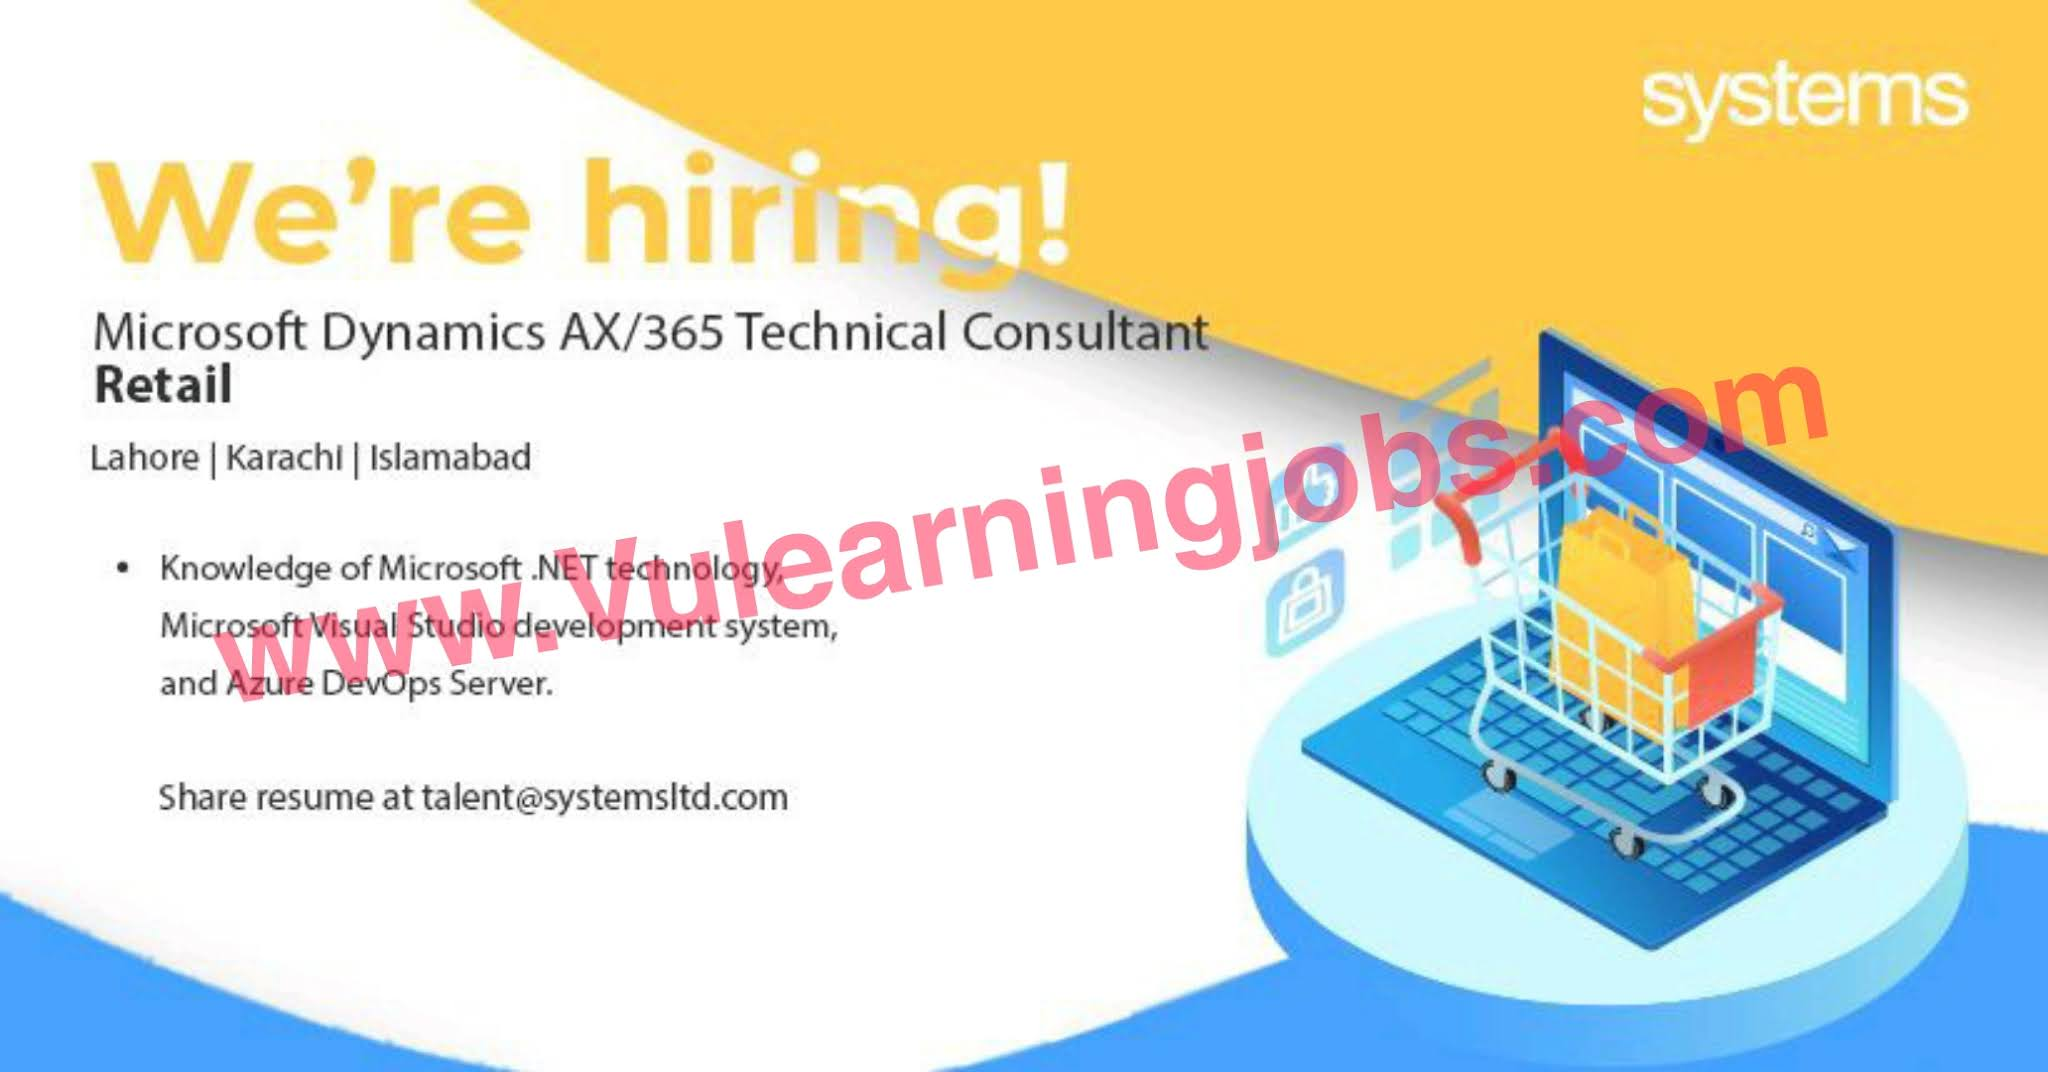 Systems Limited Jobs July 2021 Microsoft Dynamics AX/365 Technical Consultant Retail